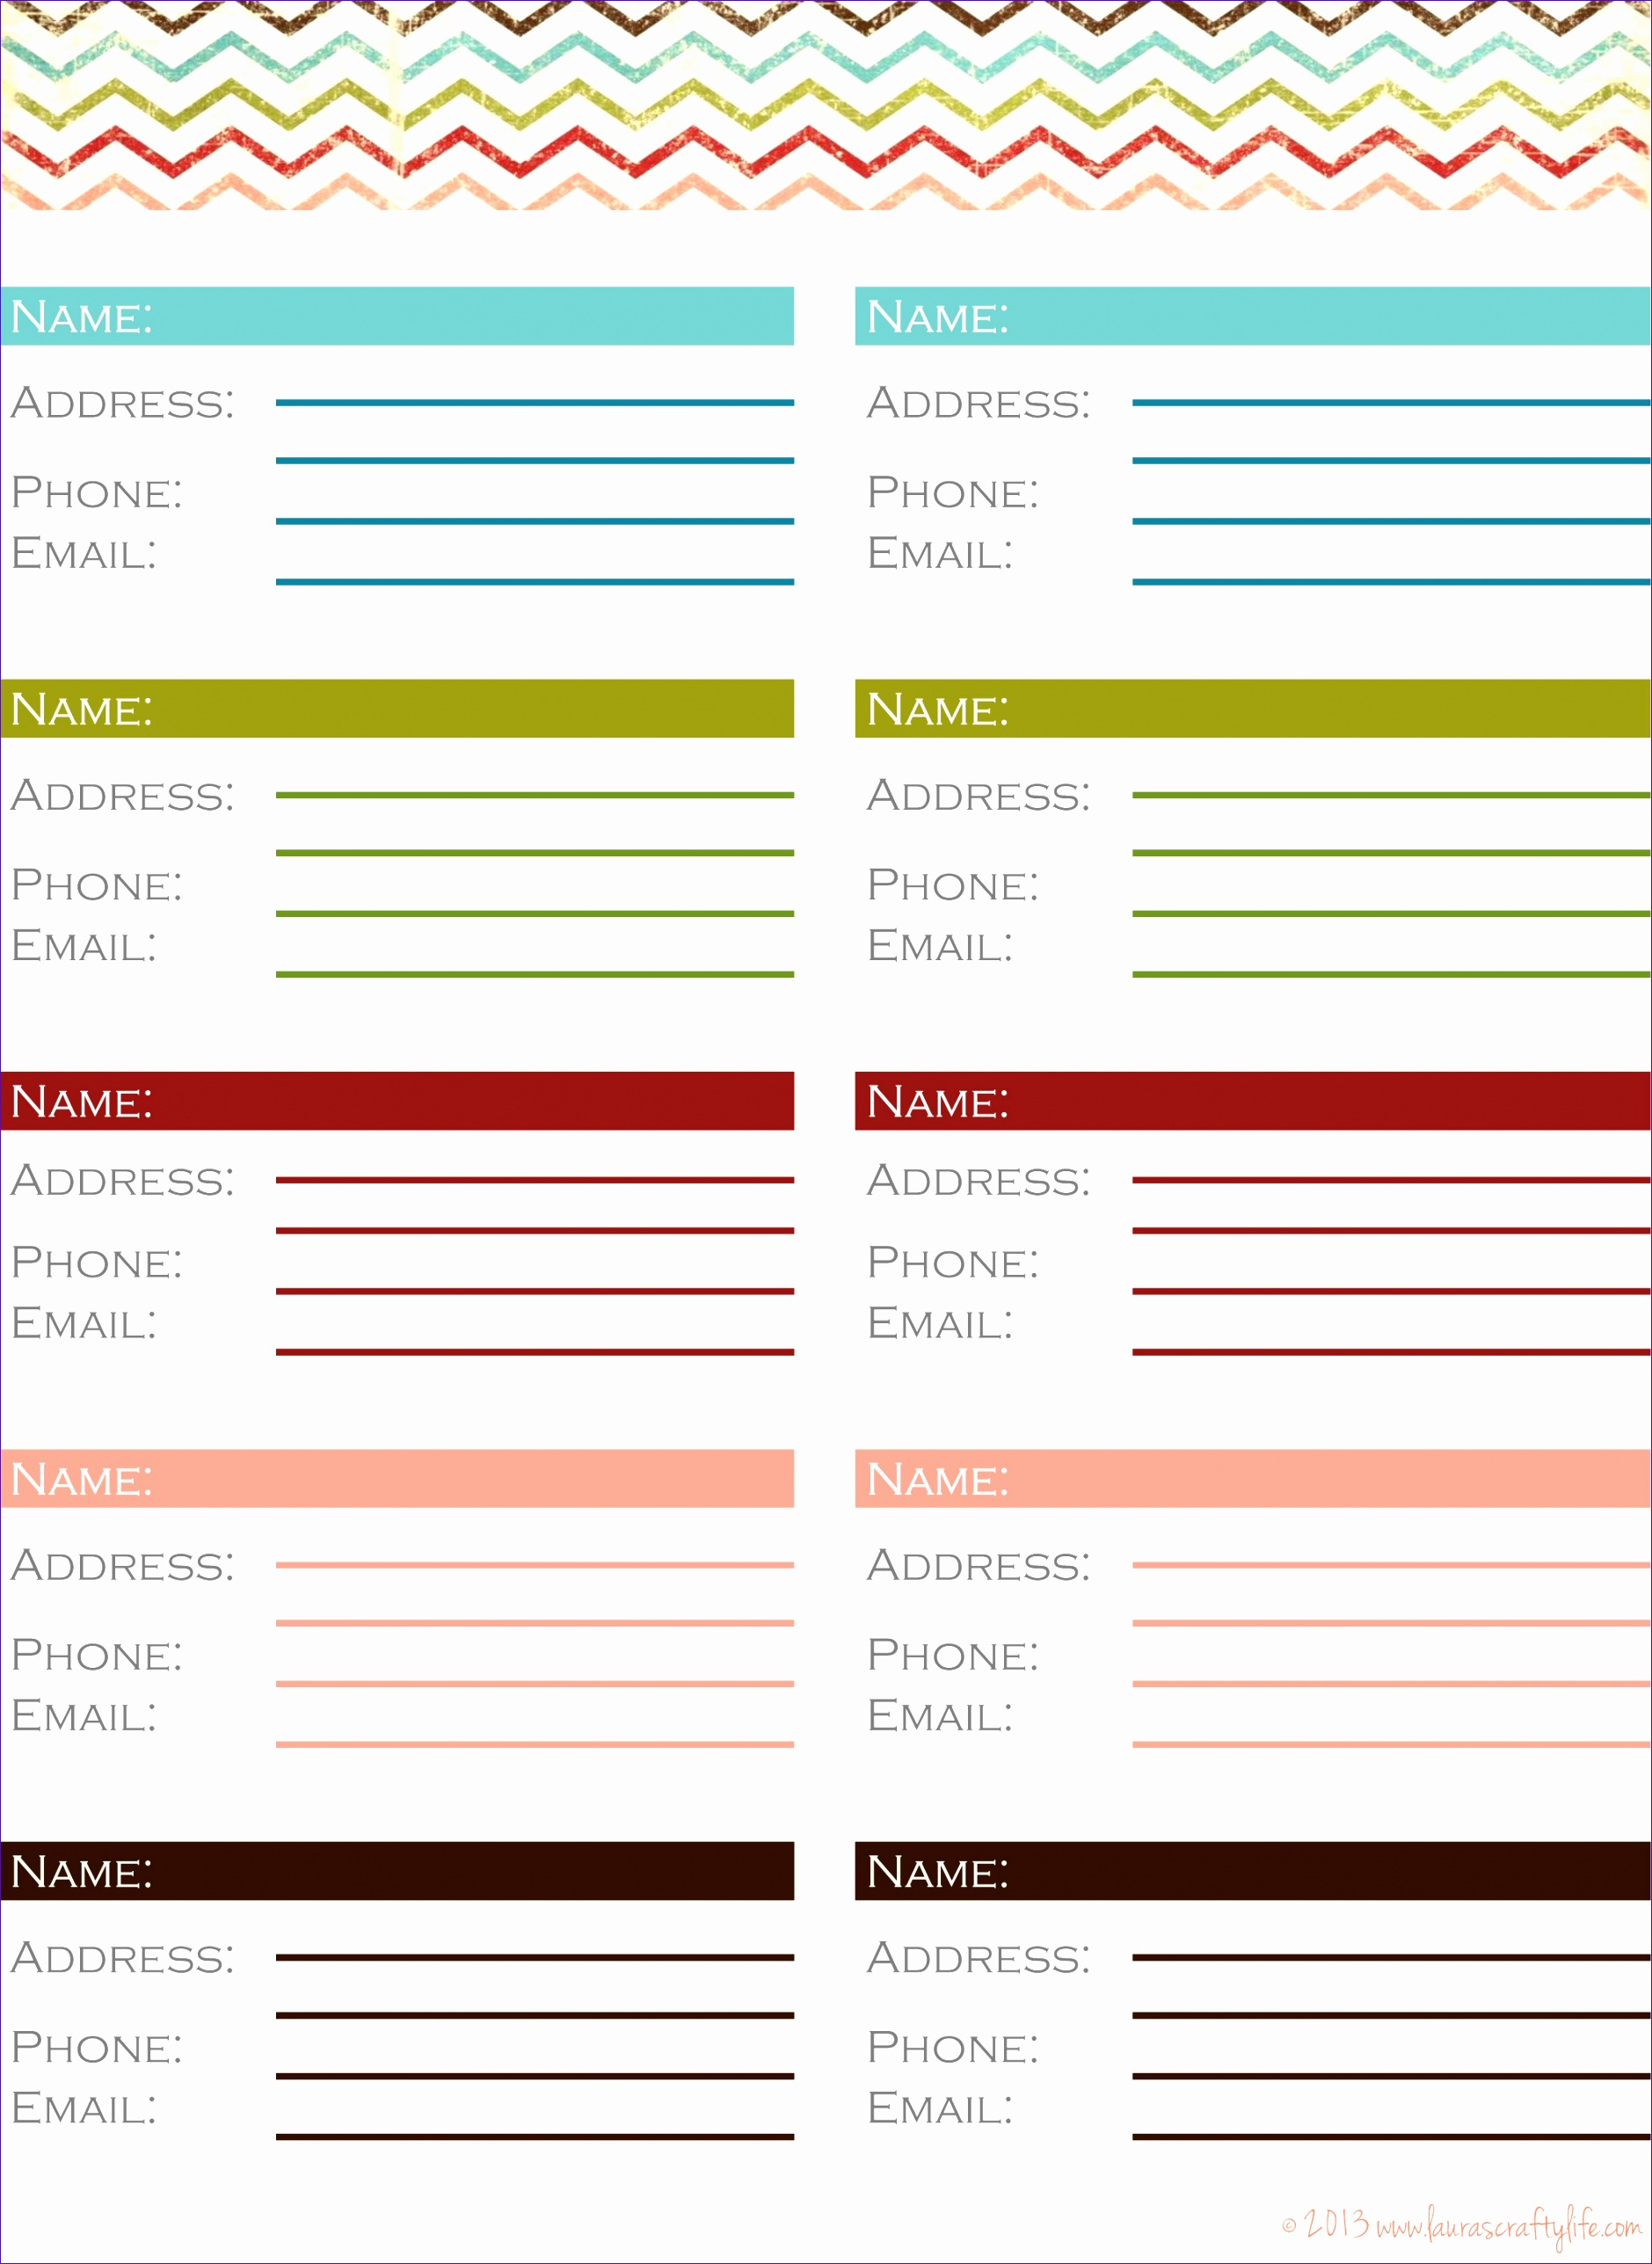 10 phone book excel template - exceltemplates